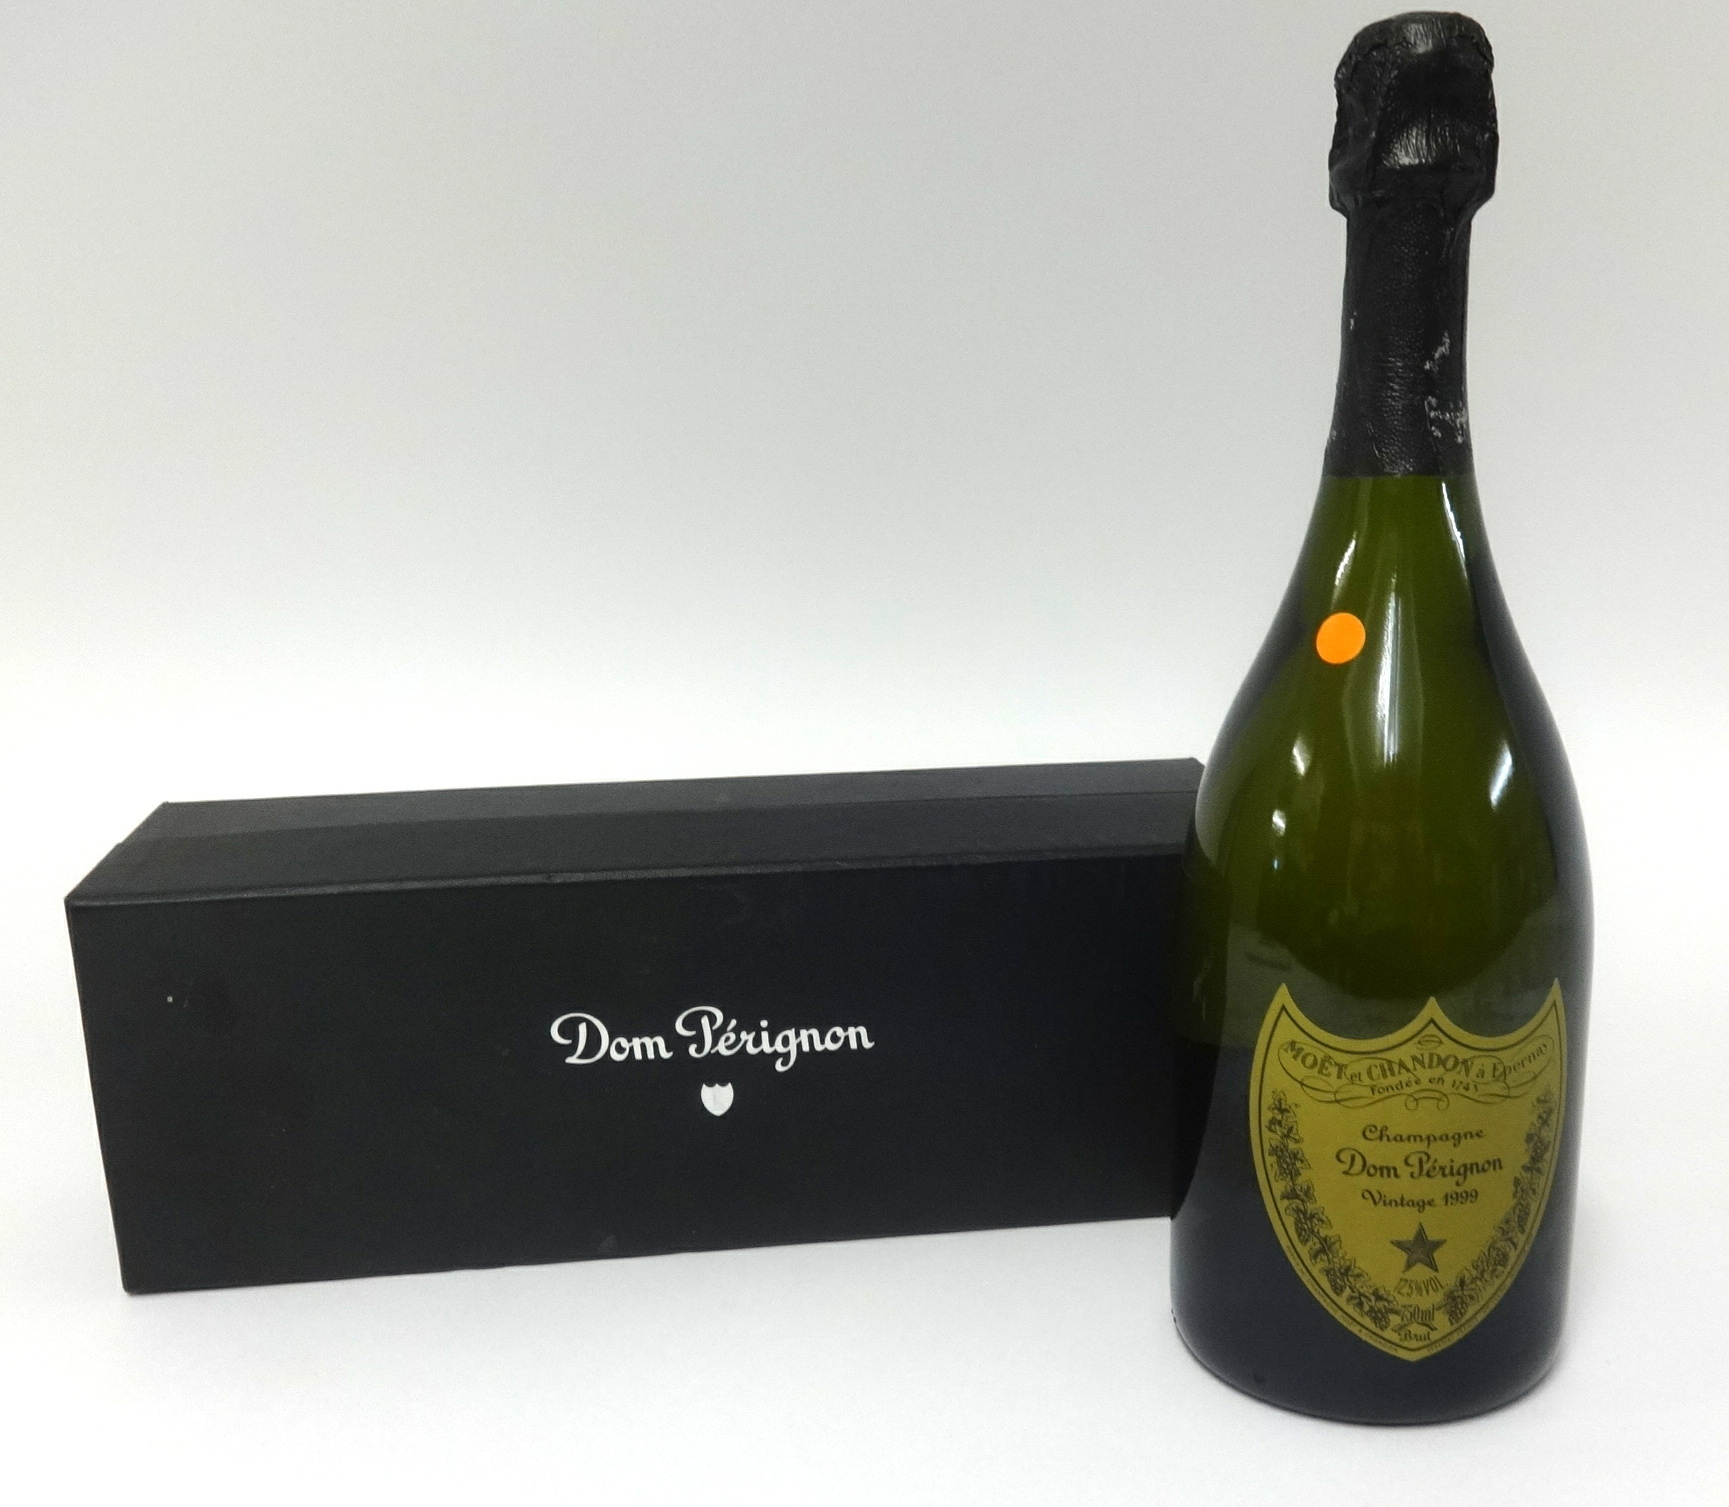 Lot 024 - A vintage 1999 boxed bottle of Dom Perignon.